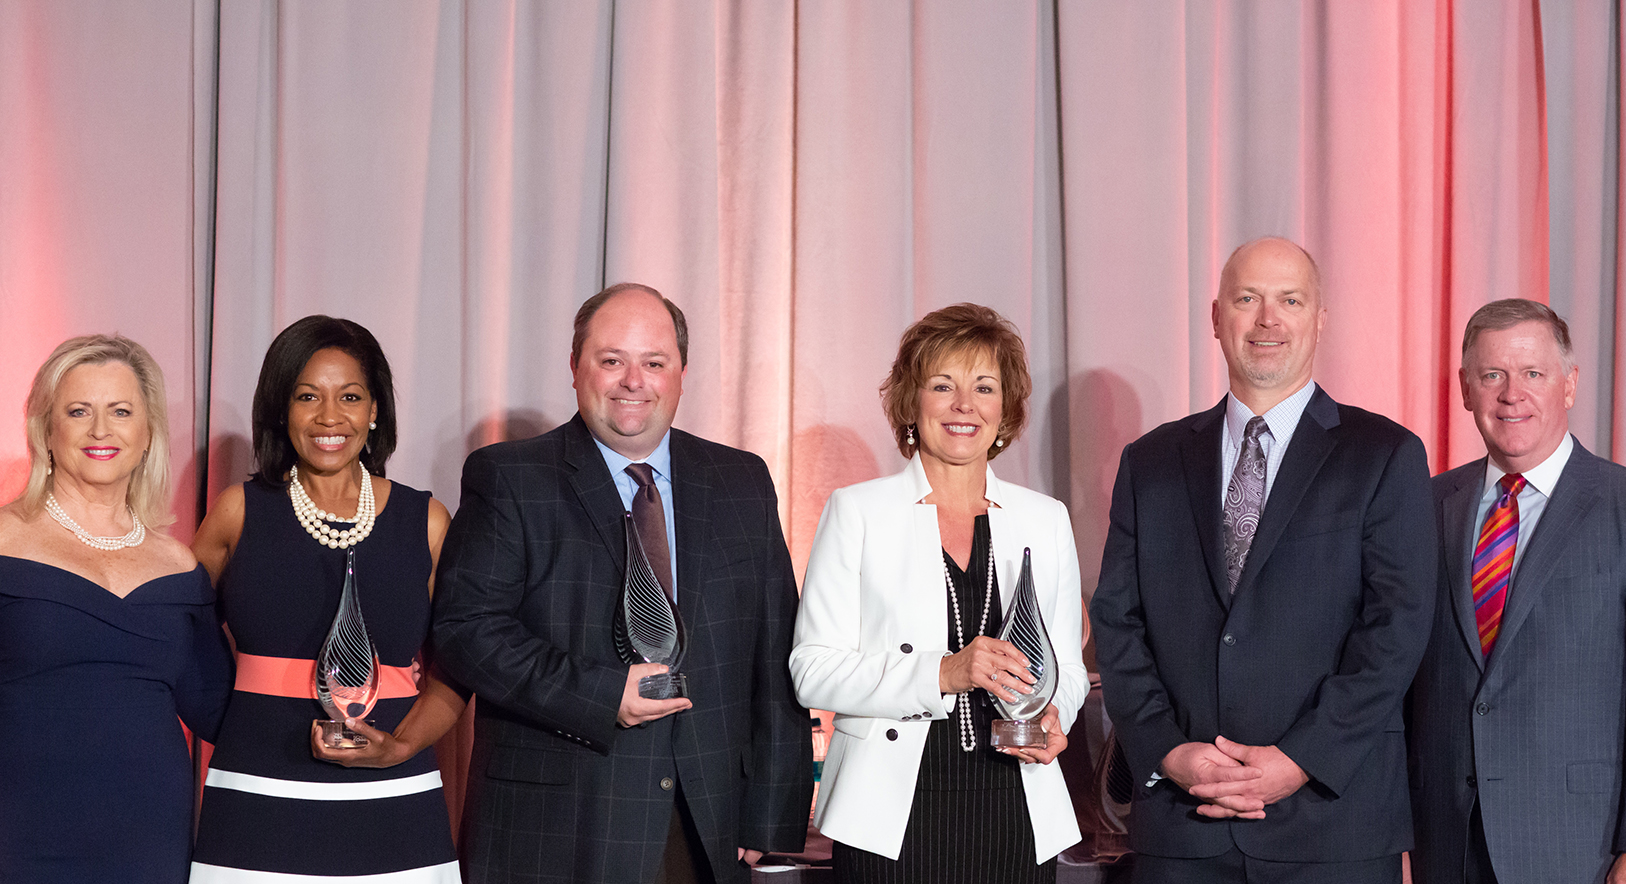 2018 Philanthropy Award Honorees smiling with awards